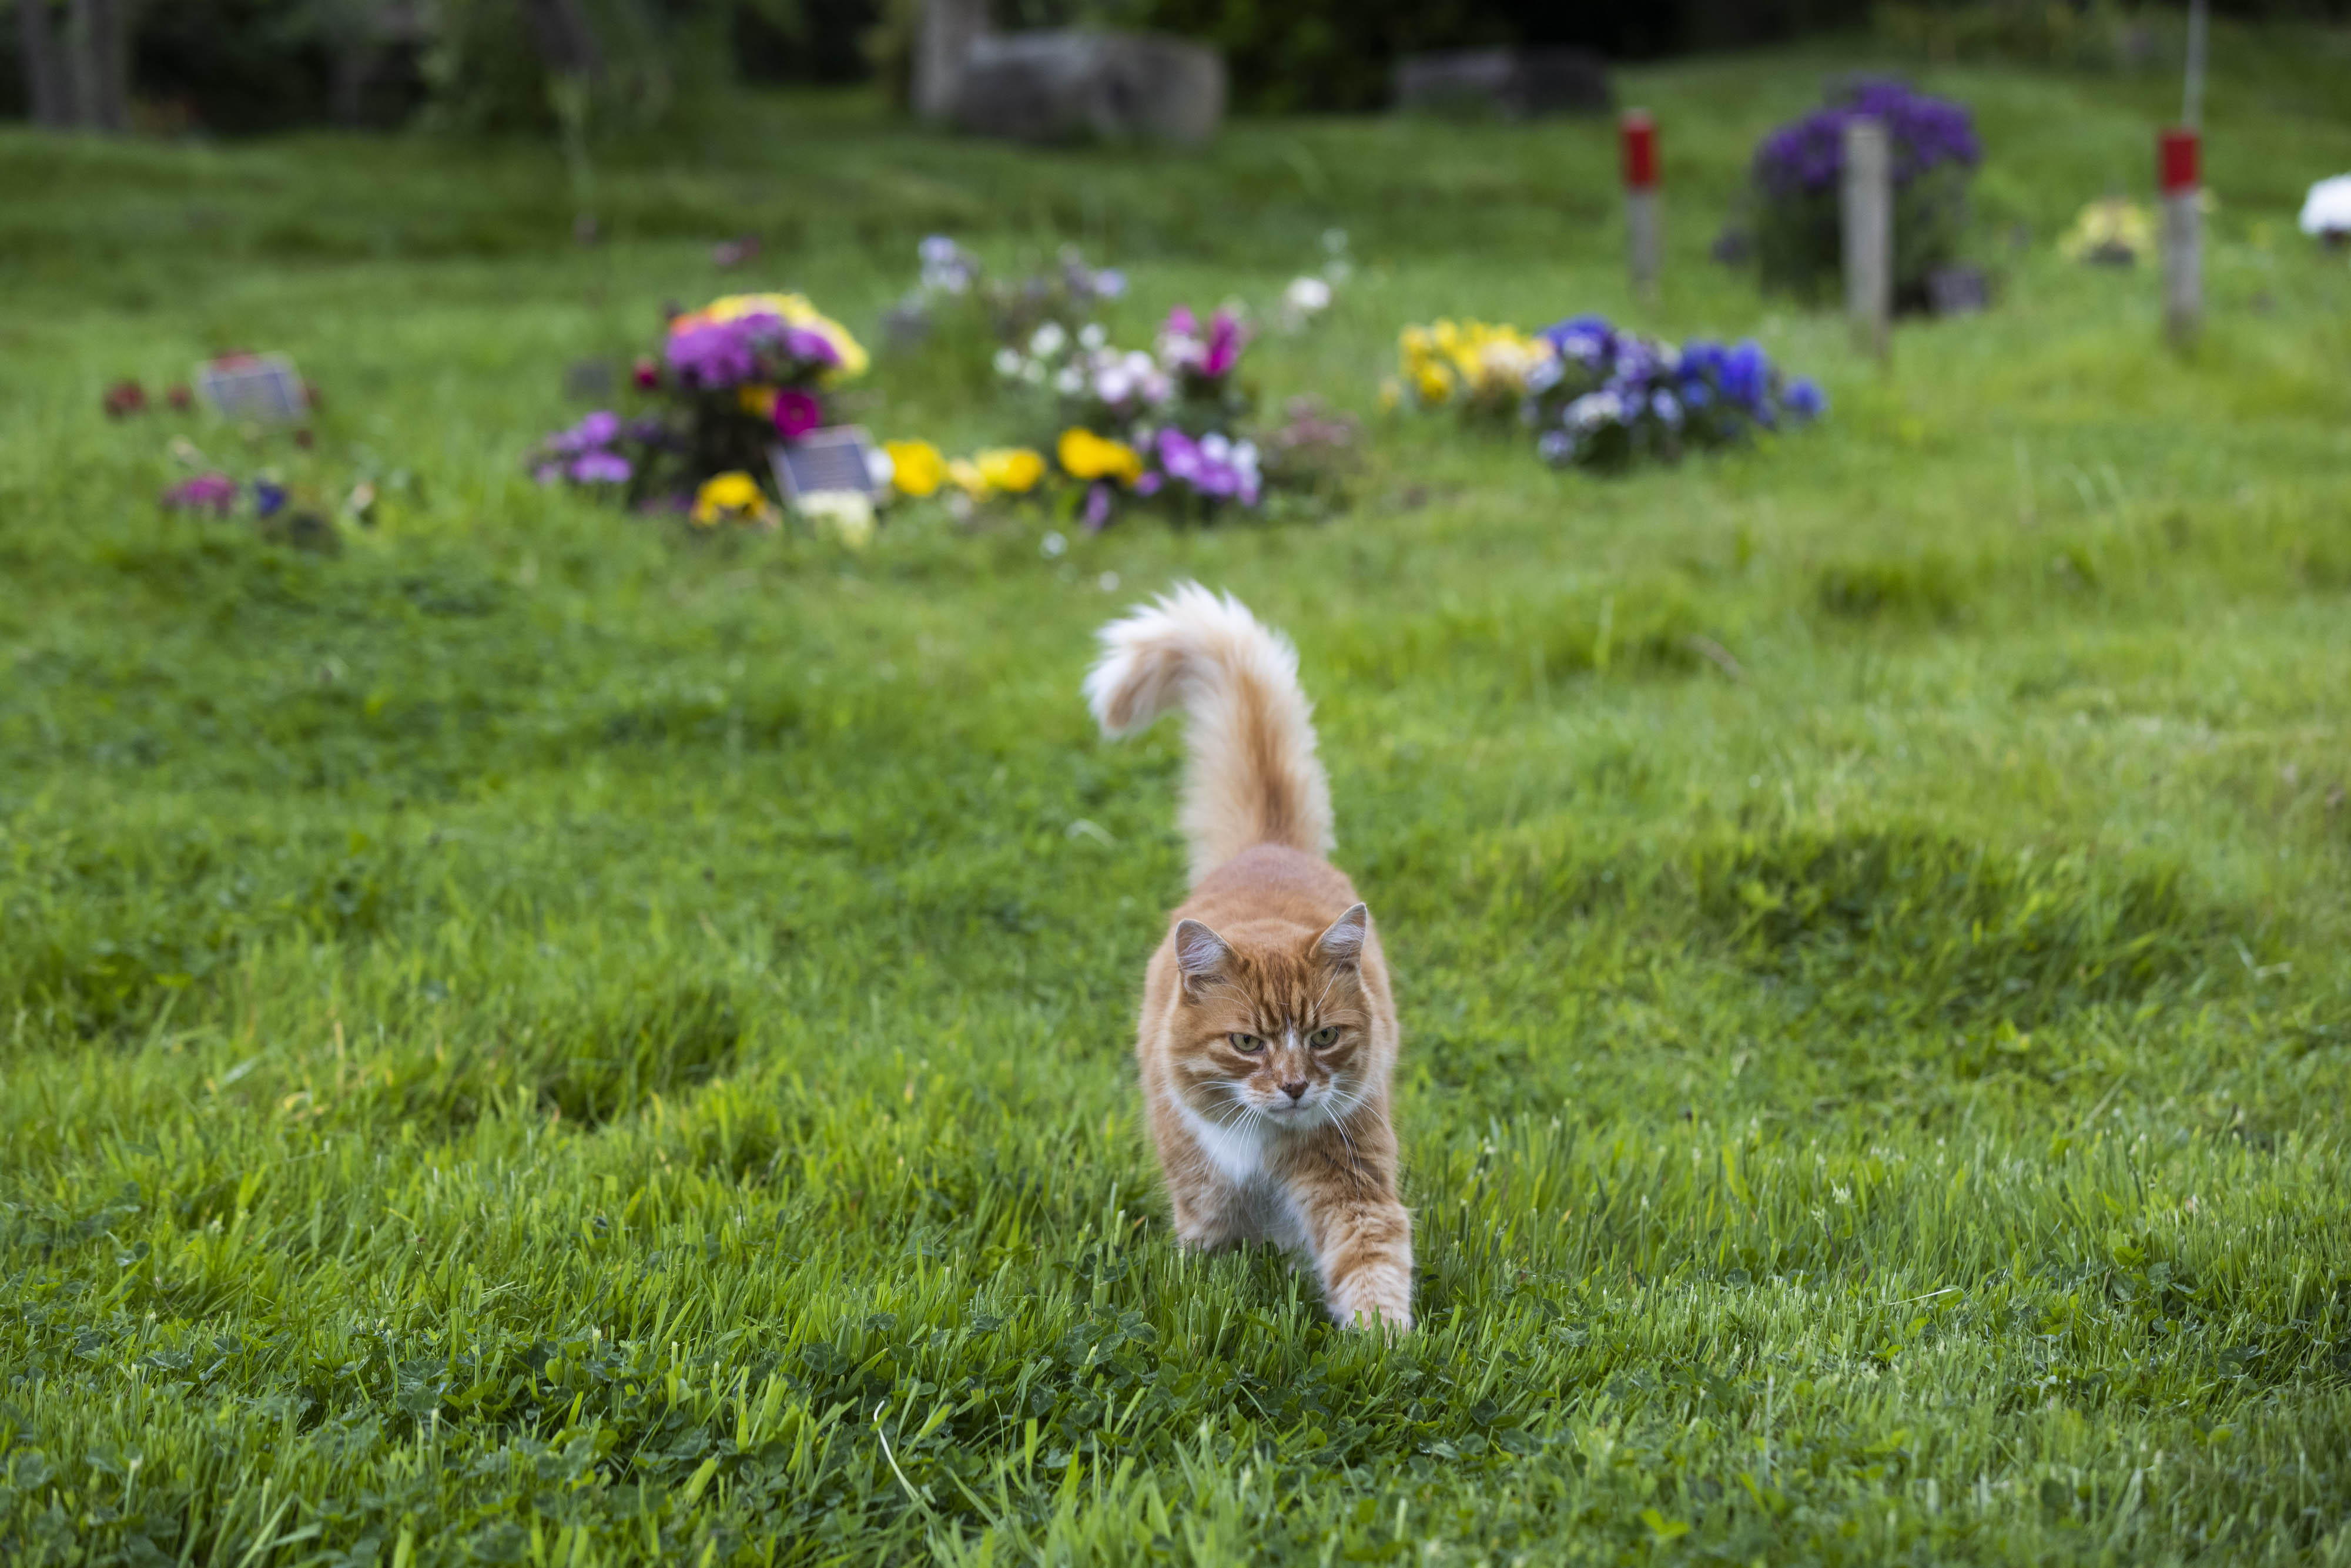 Paddy the cat, who was nominated for the Cats Protection National Cat Awards, as most caring cat